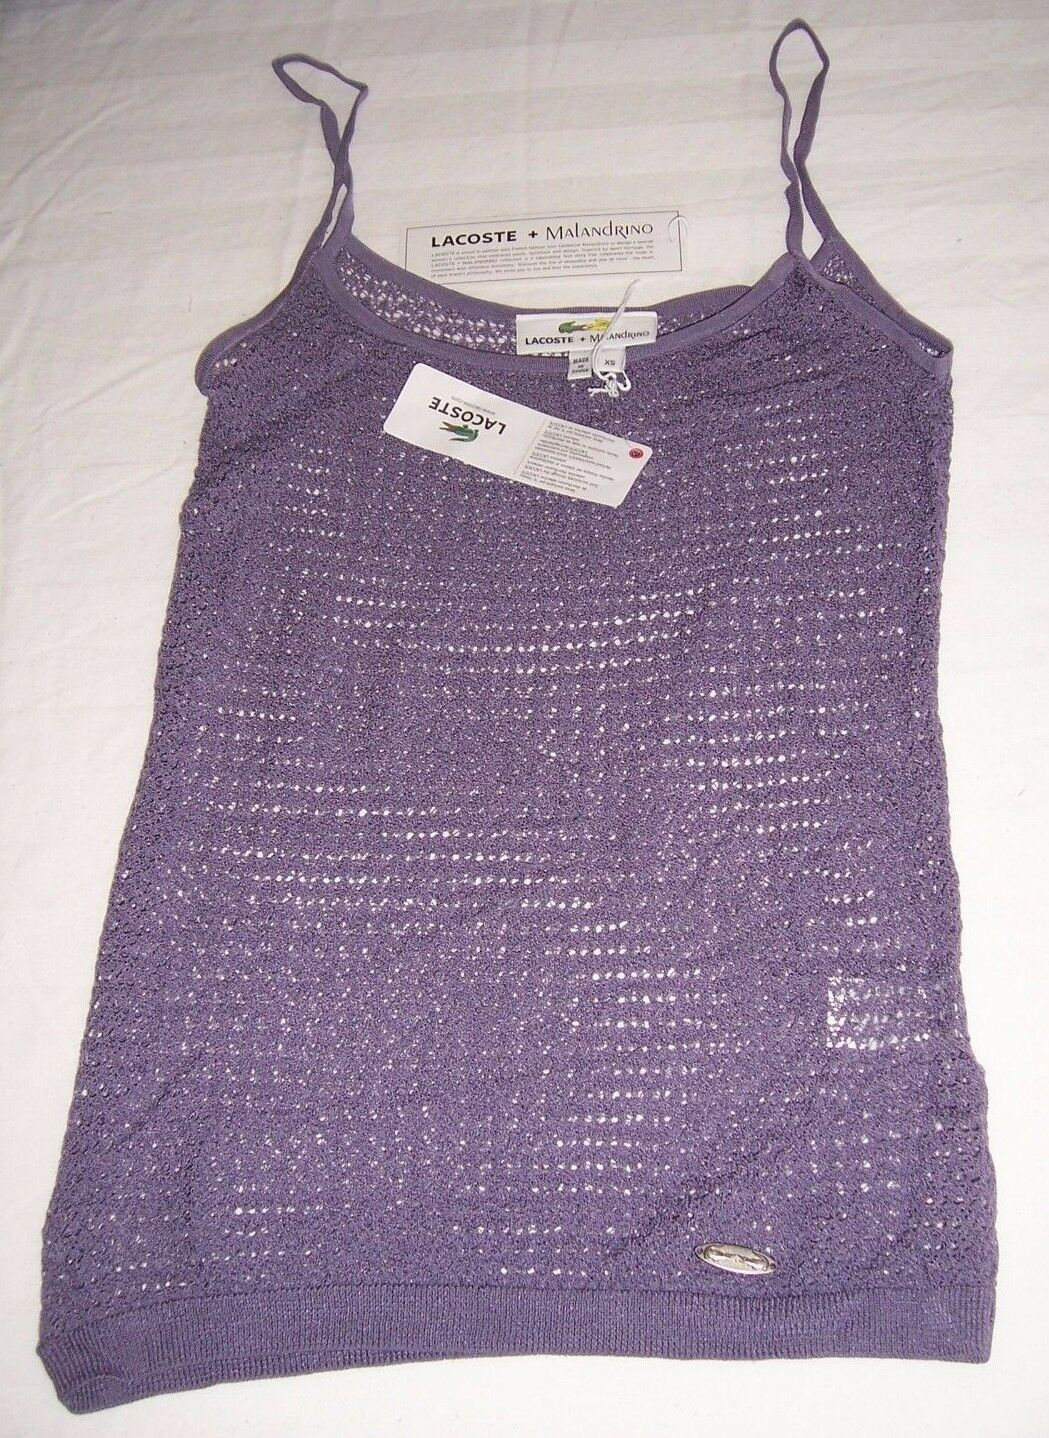 NWT Lacoste + Malandrino lila Crocheted Tank Top Shirt Misses Größe XSmall